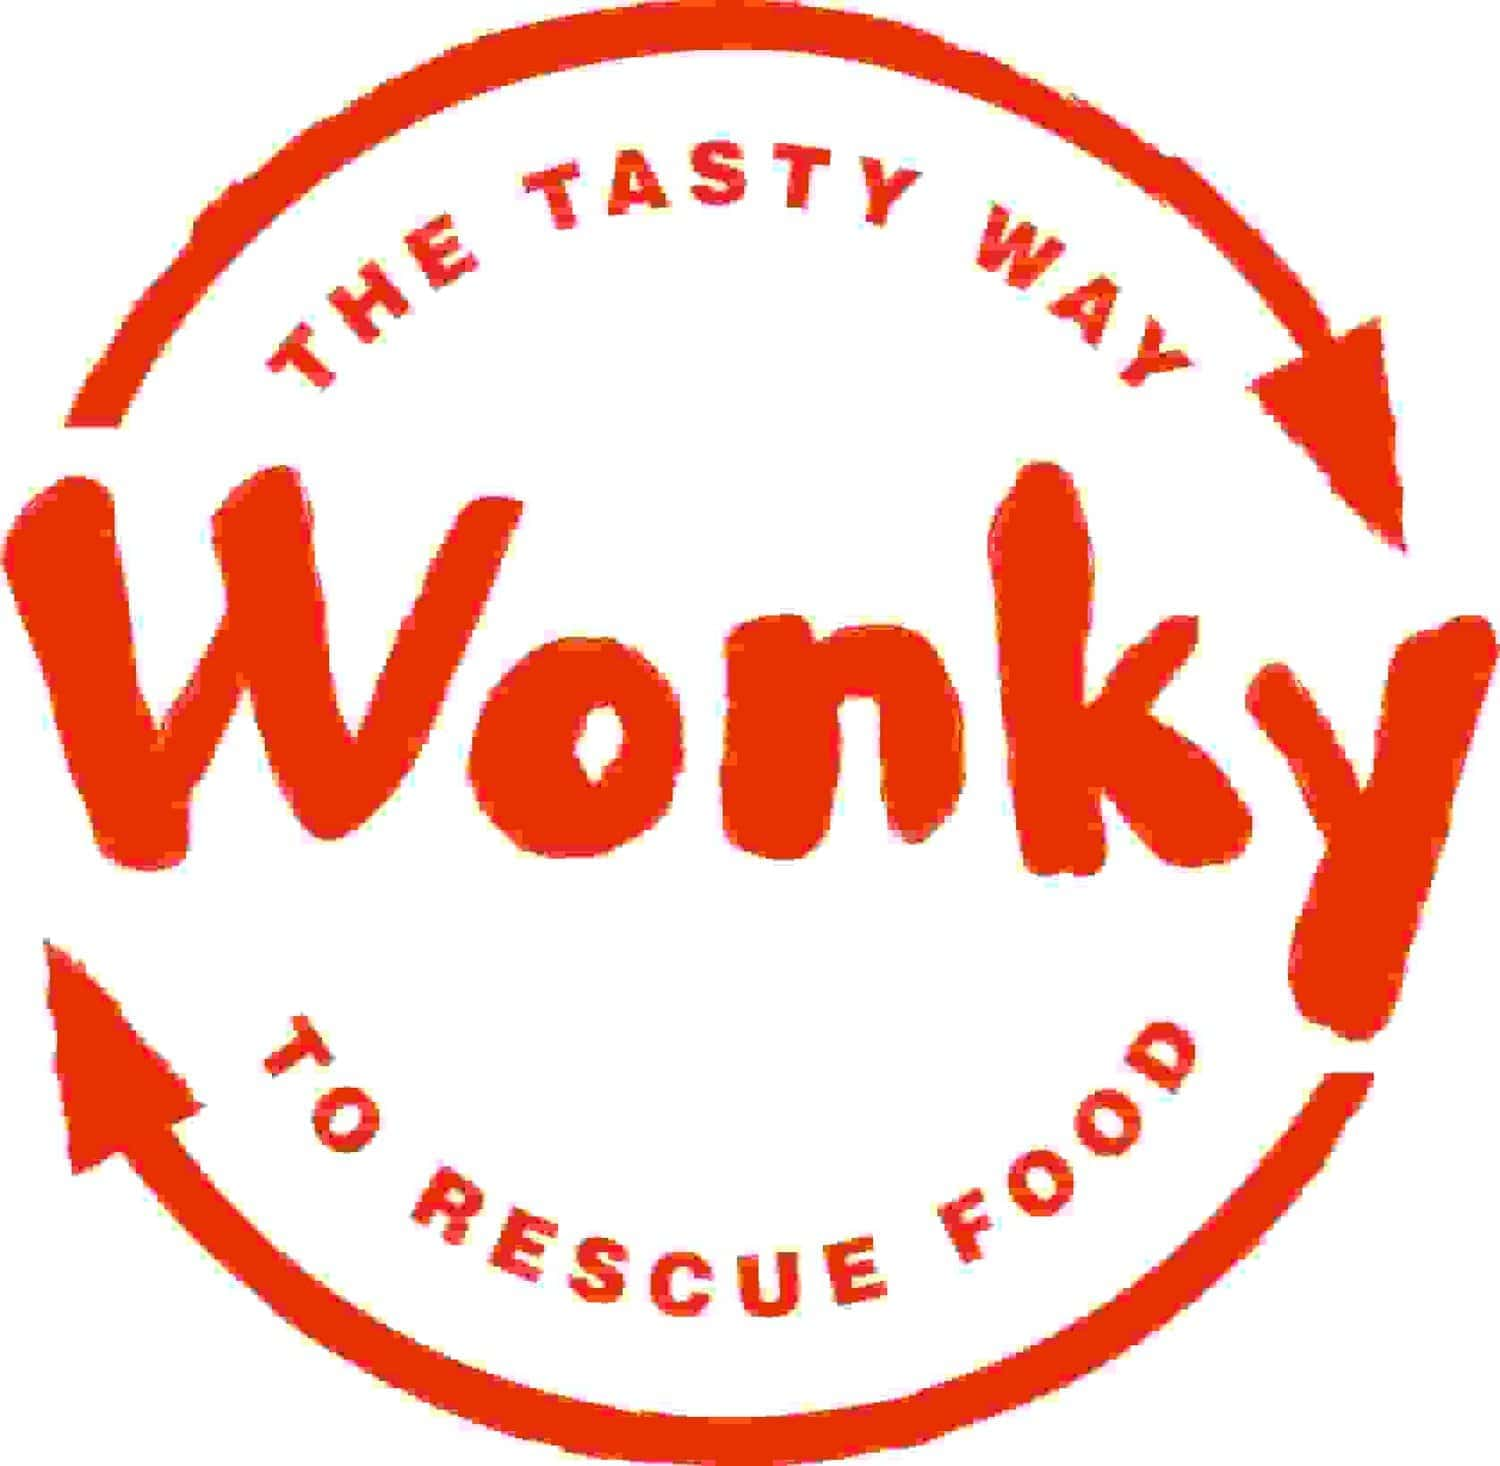 Wonky - delicious healthy snacks full of rescued vegetables